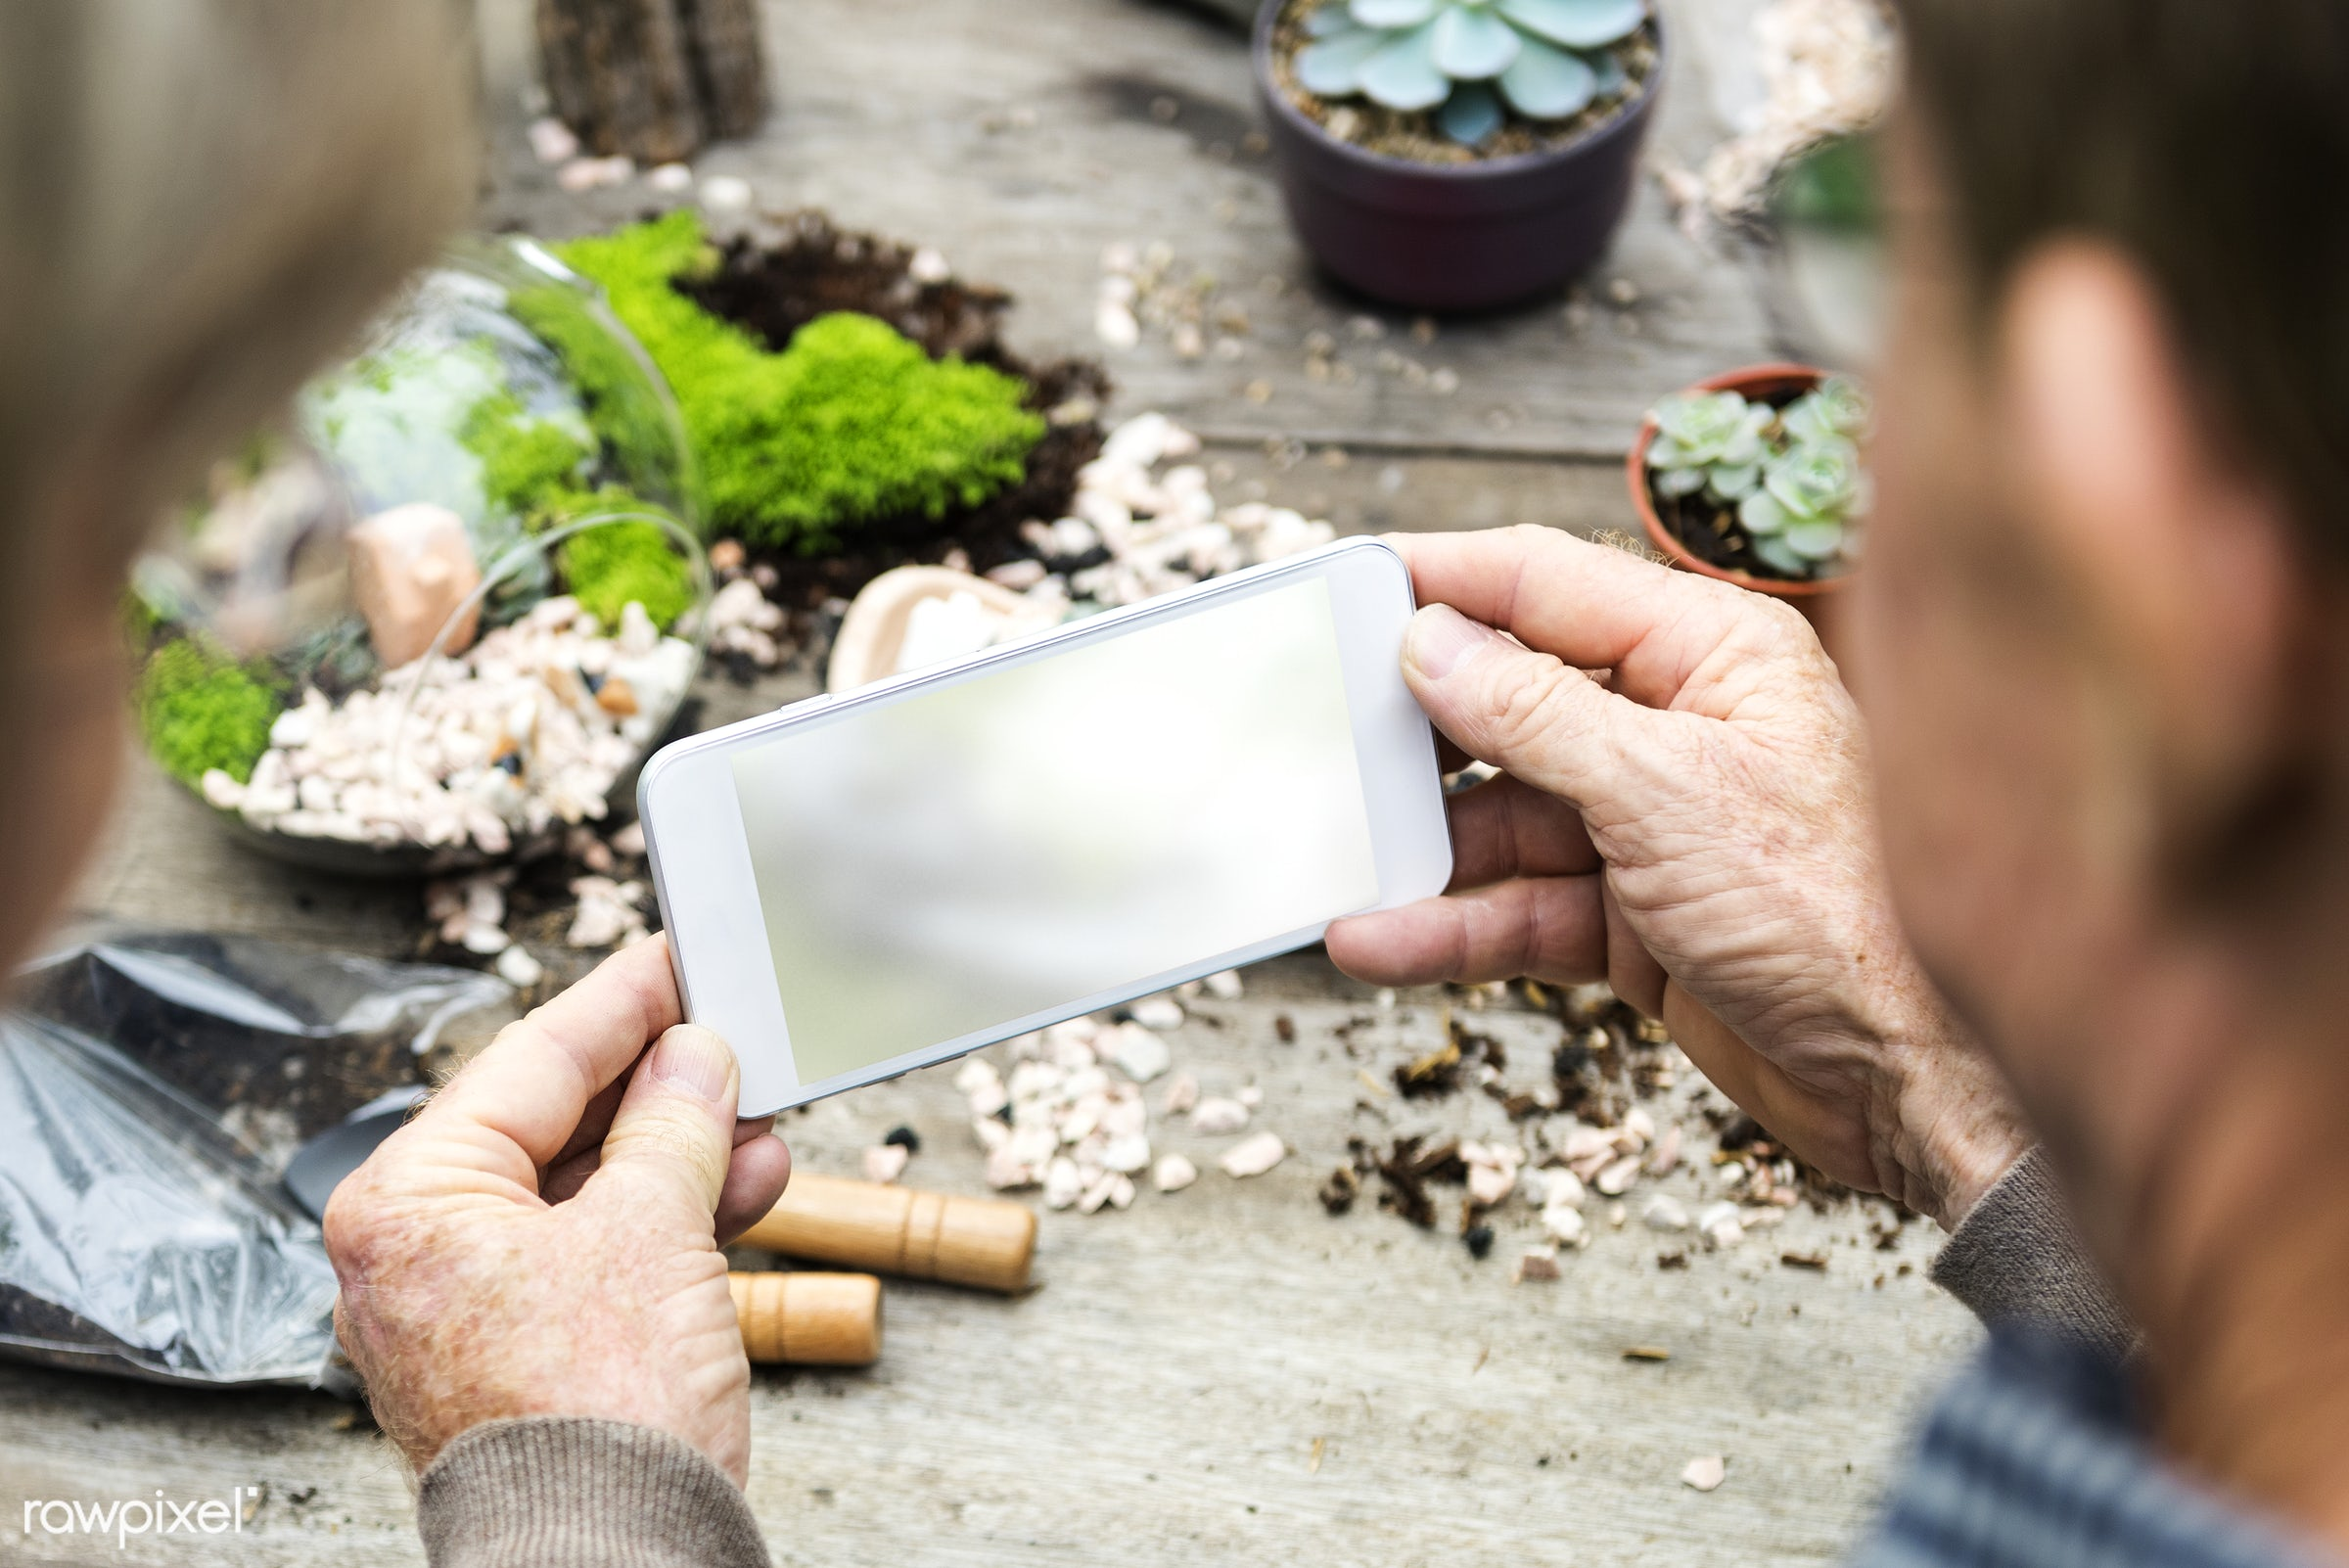 taking a photo of terrarium on the table - photo, picture, mobile, phone, terrarium, hobby, plants, smartphone, camera,...